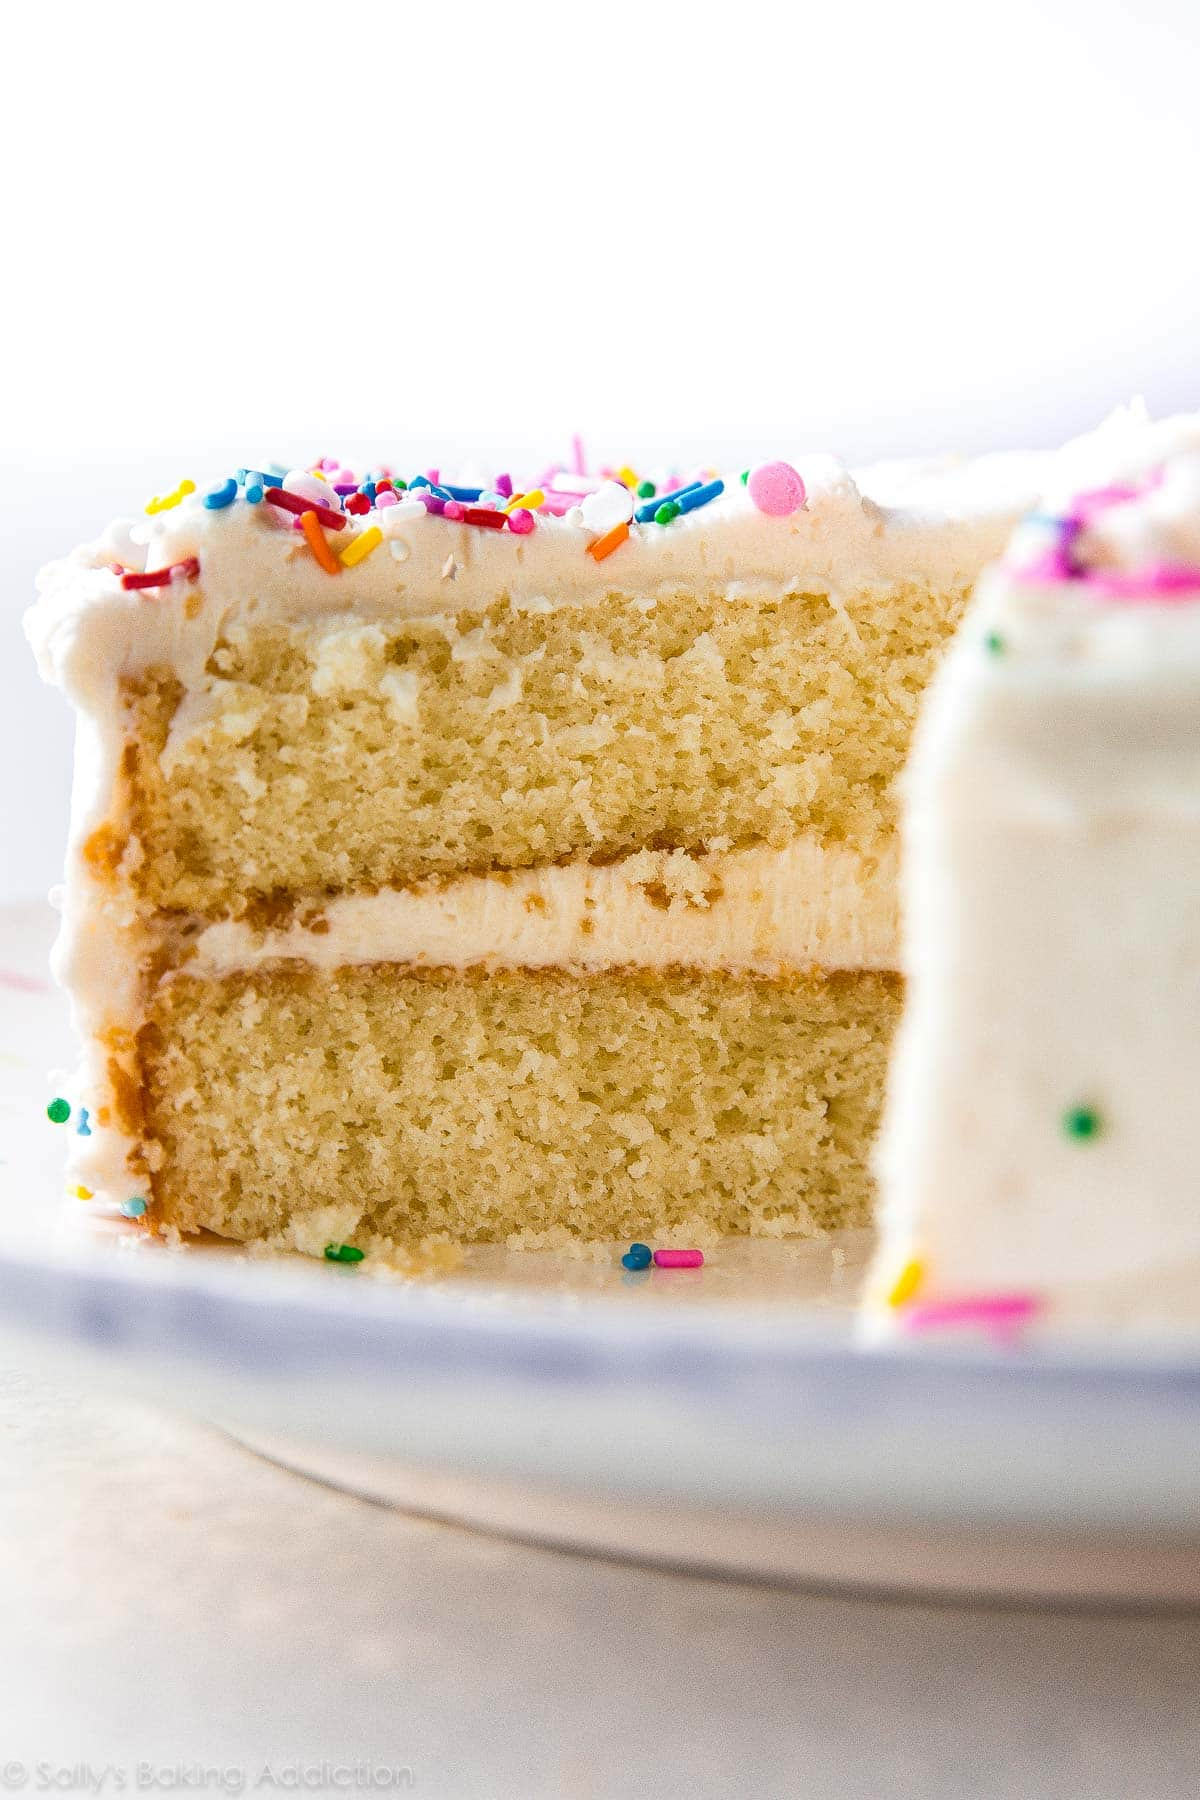 New Favorite White Layer Cake | Sally\'s Baking Addiction